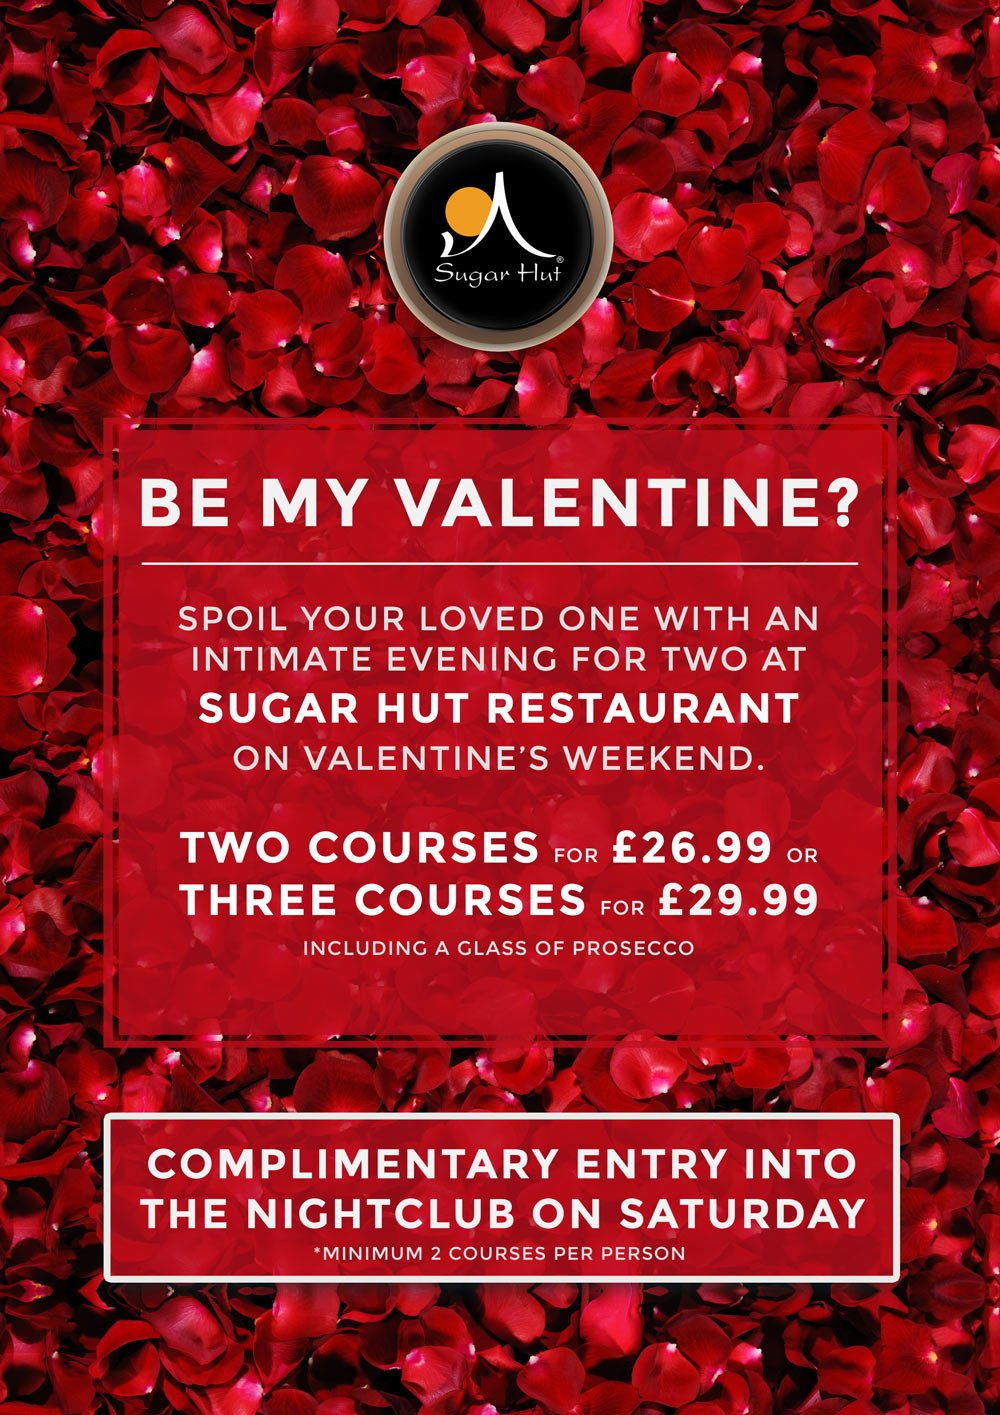 This Weekend is Valentine's Weekend. Enjoy dinner in the @sugarhutcafe and gain complimentary entry into the club! https://t.co/lUXIIFmxcL